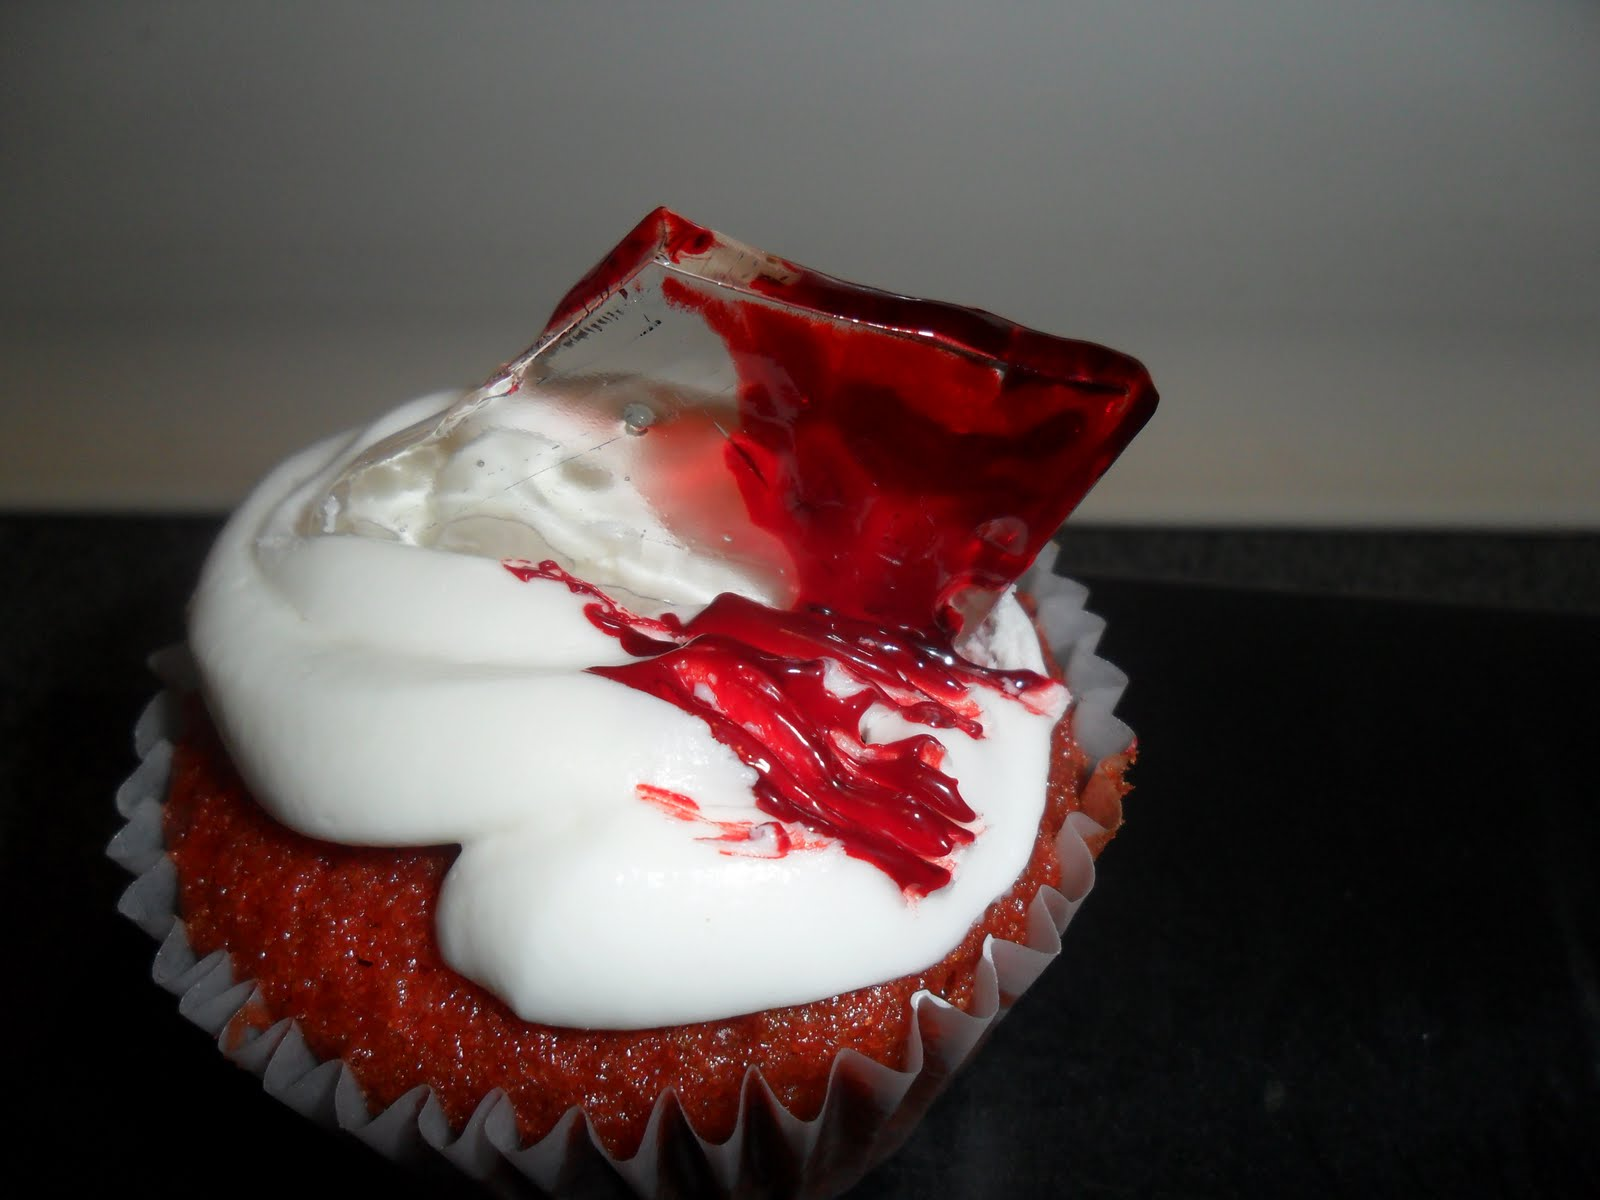 The Nomnomnomicon Johnny S Bloody Edible Glass Cupcakes